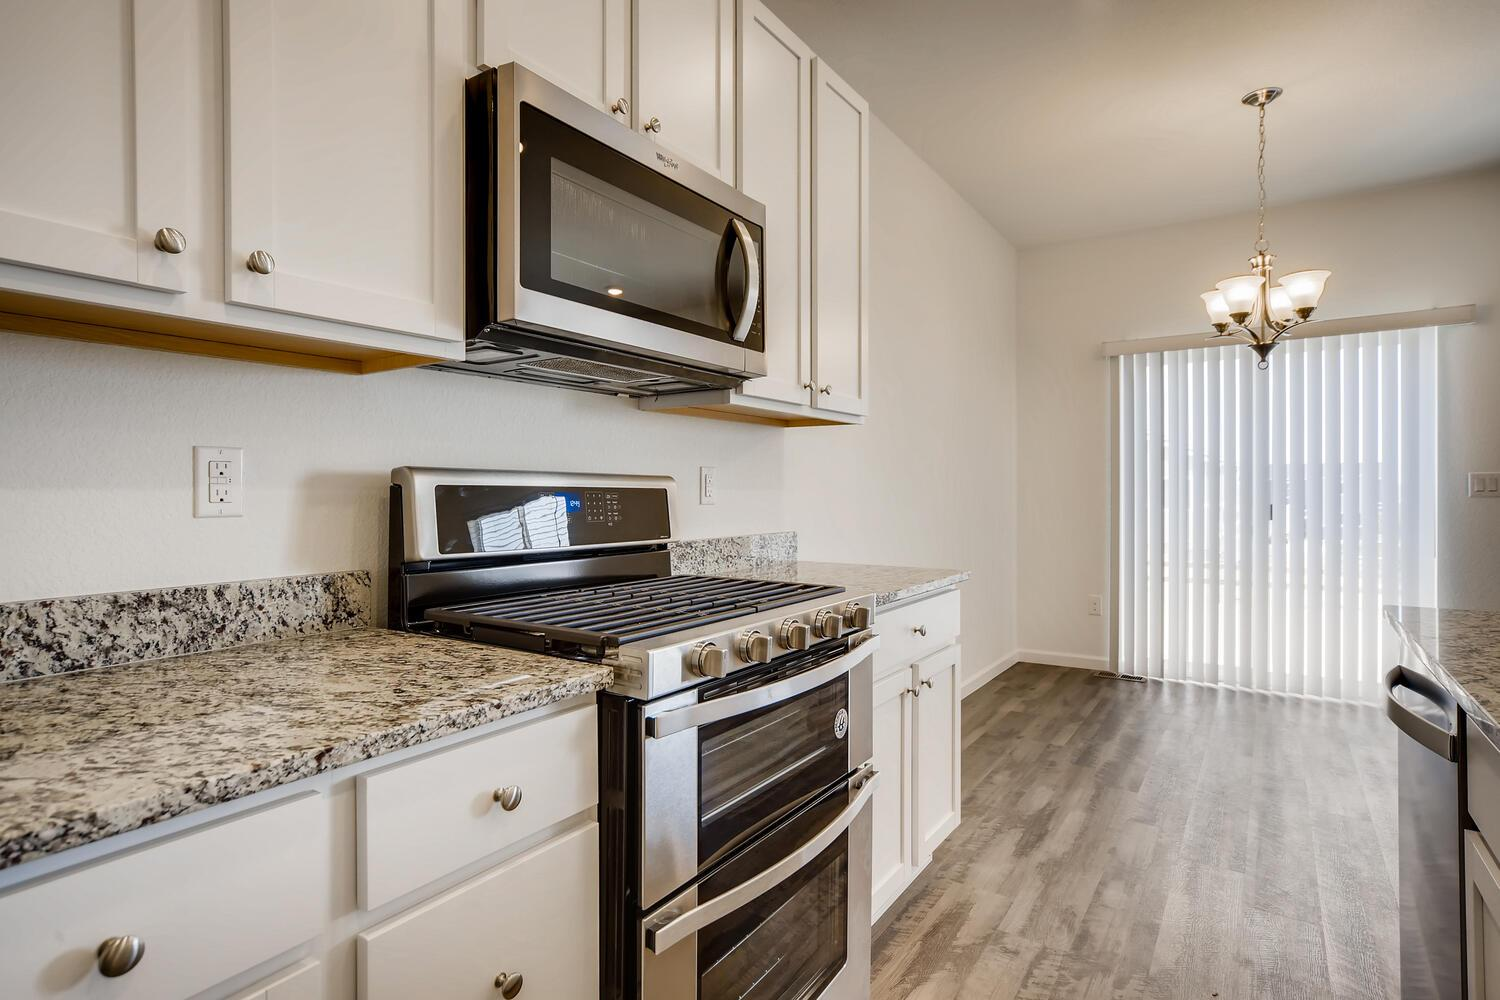 Kitchen featured in the Palisade (Residence 39102) By Century Communities in Denver, CO